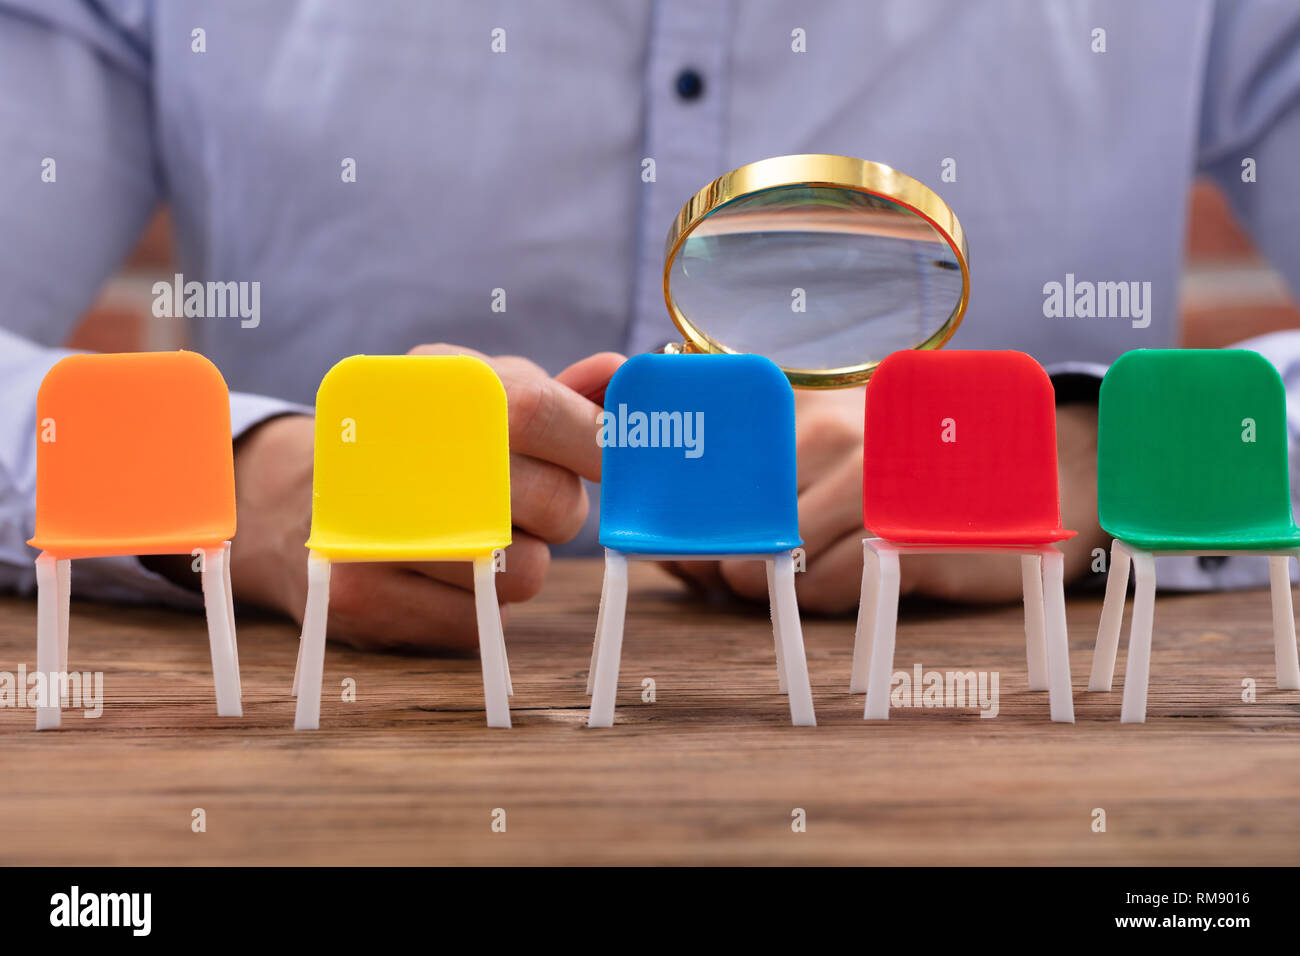 Close-up Of A Businessperson's Hand Looking At Vacant Colorful Chairs Through Magnifying Glass Stock Photo